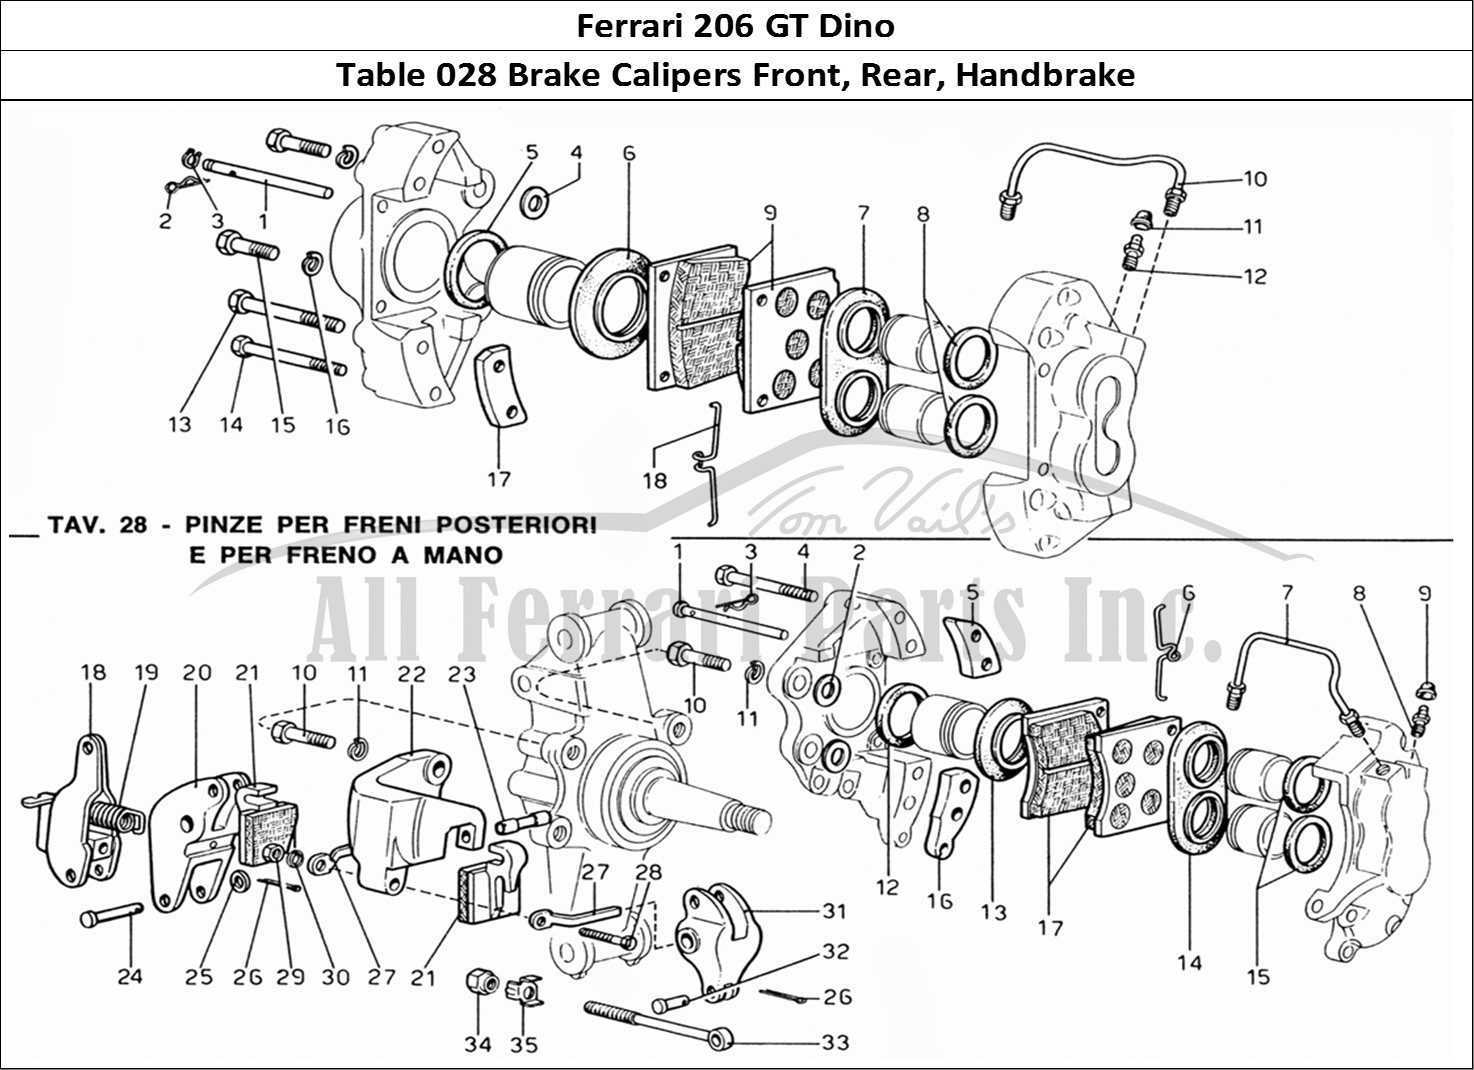 hight resolution of ferrari 206 gt dino mechanical table 028 brake calipers front rear handbrake